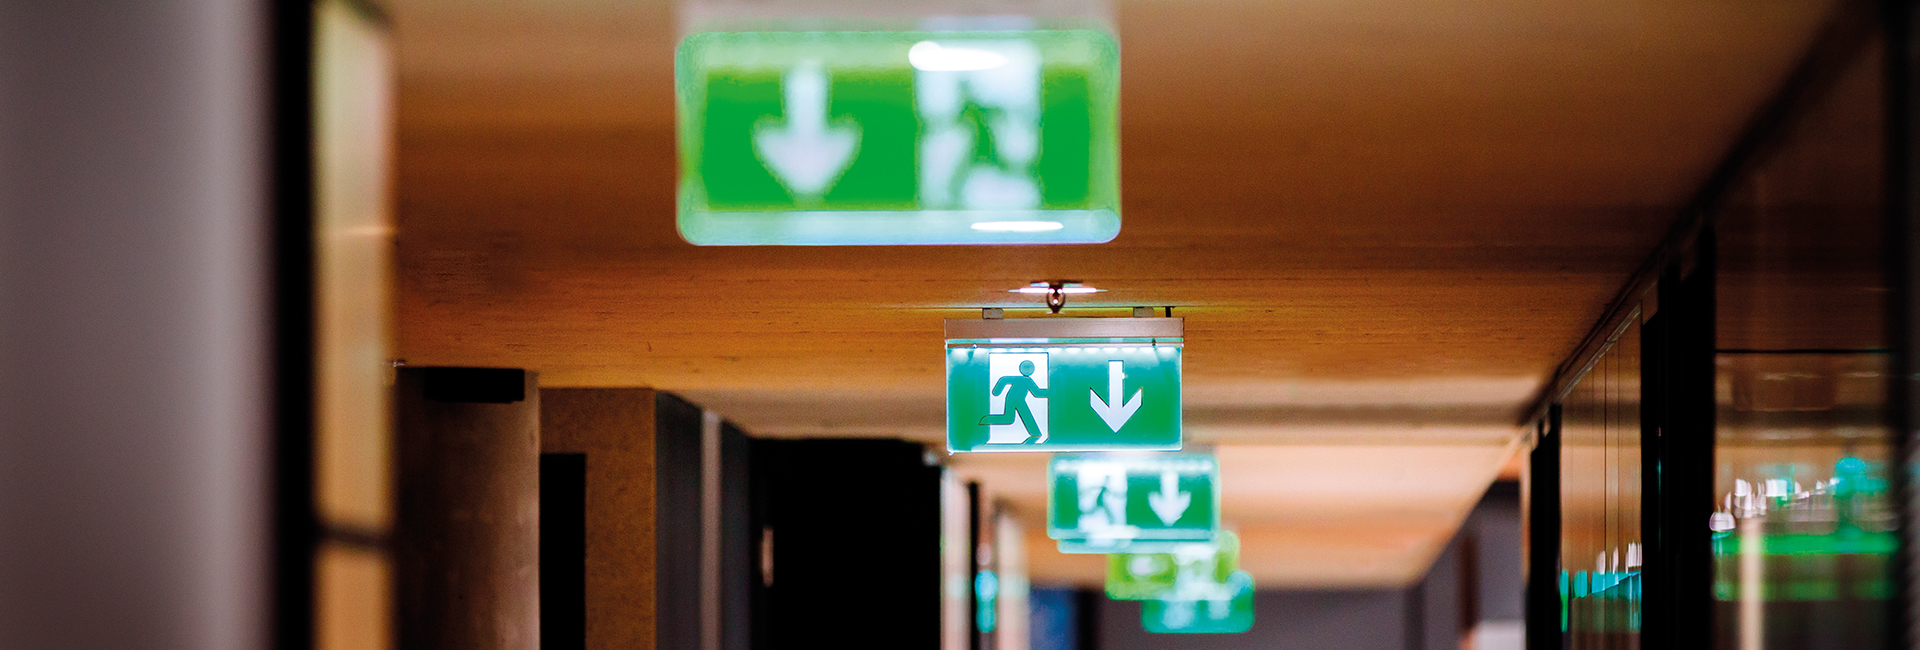 Show products in category Self Test Vs Manual Test Emergency Lighting